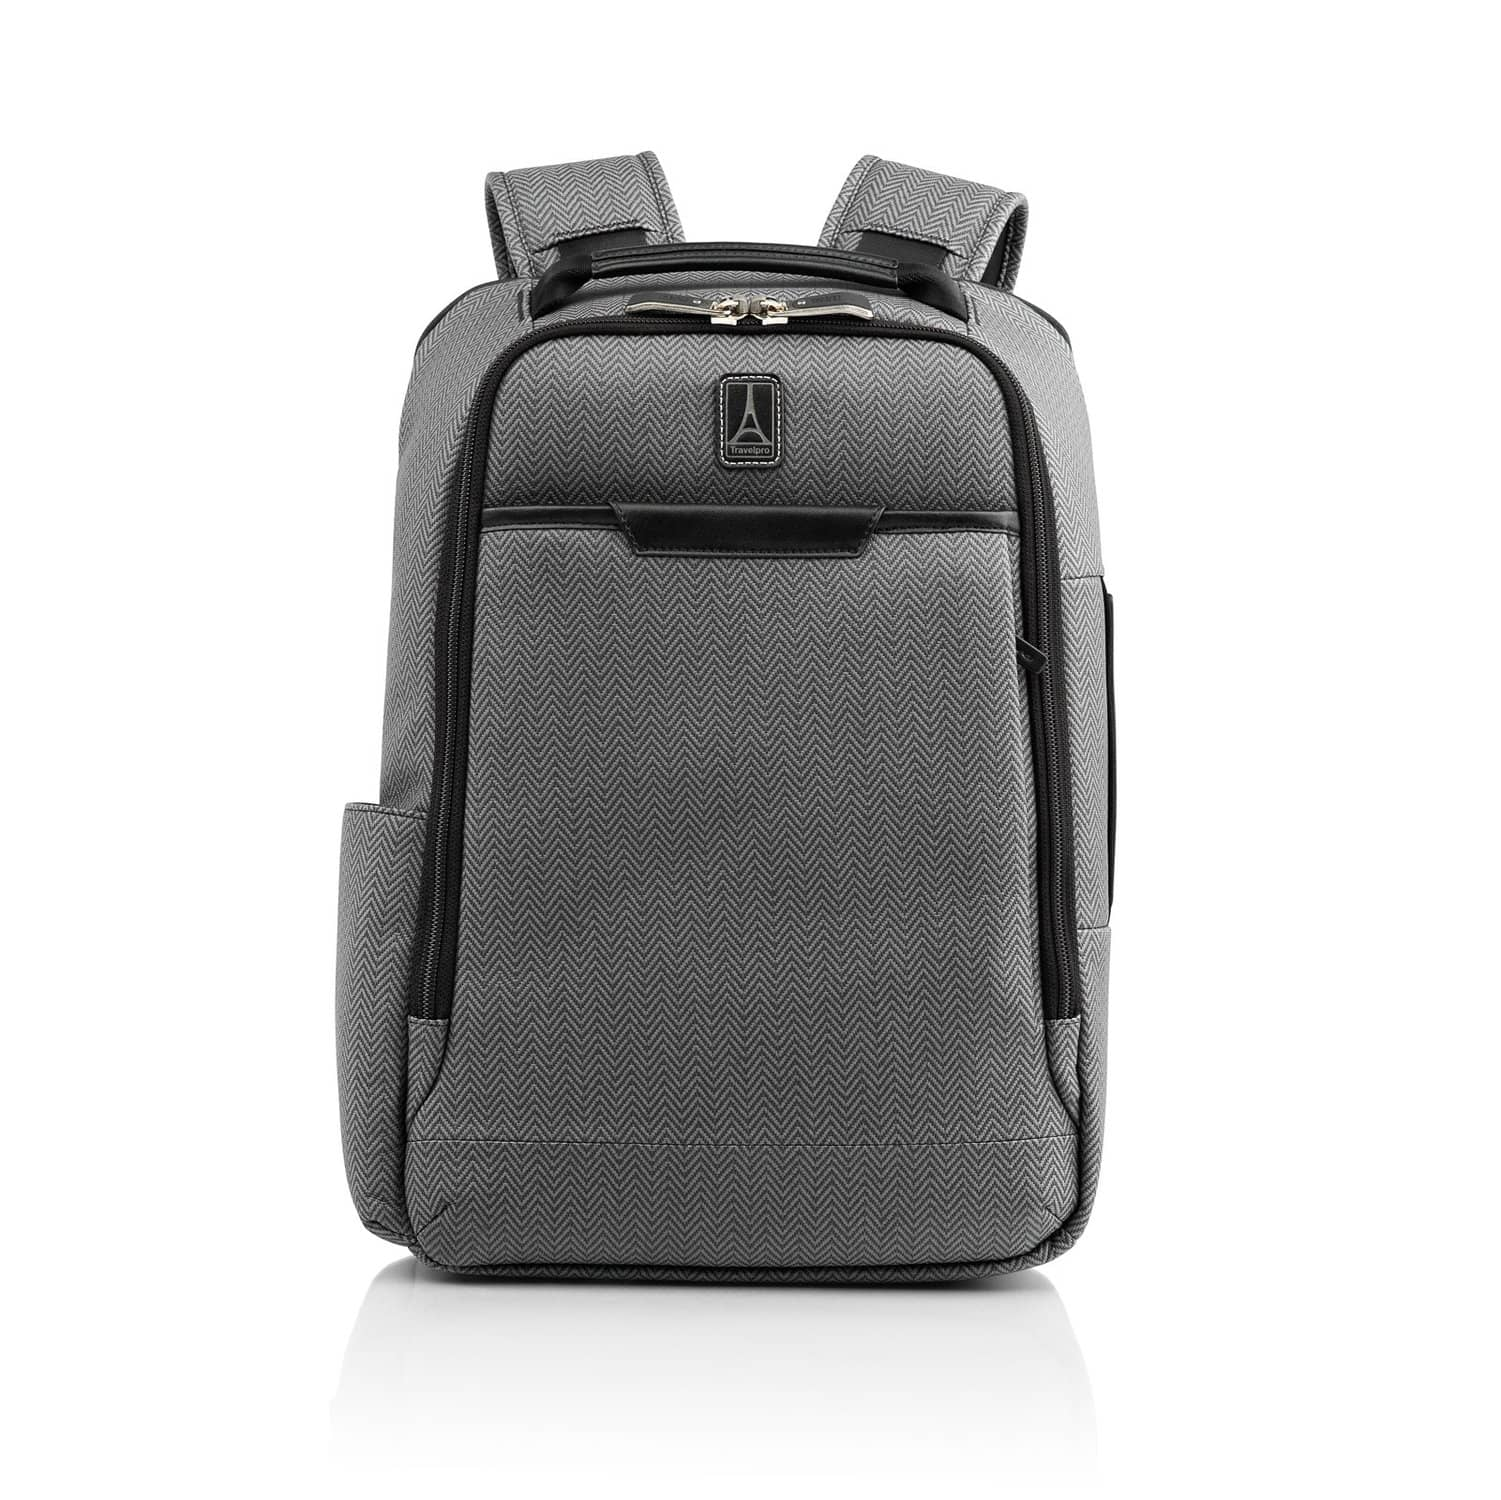 Travelpro Travelpro® X Travel + Leisure® Slim Backpack WHISTLER GREY